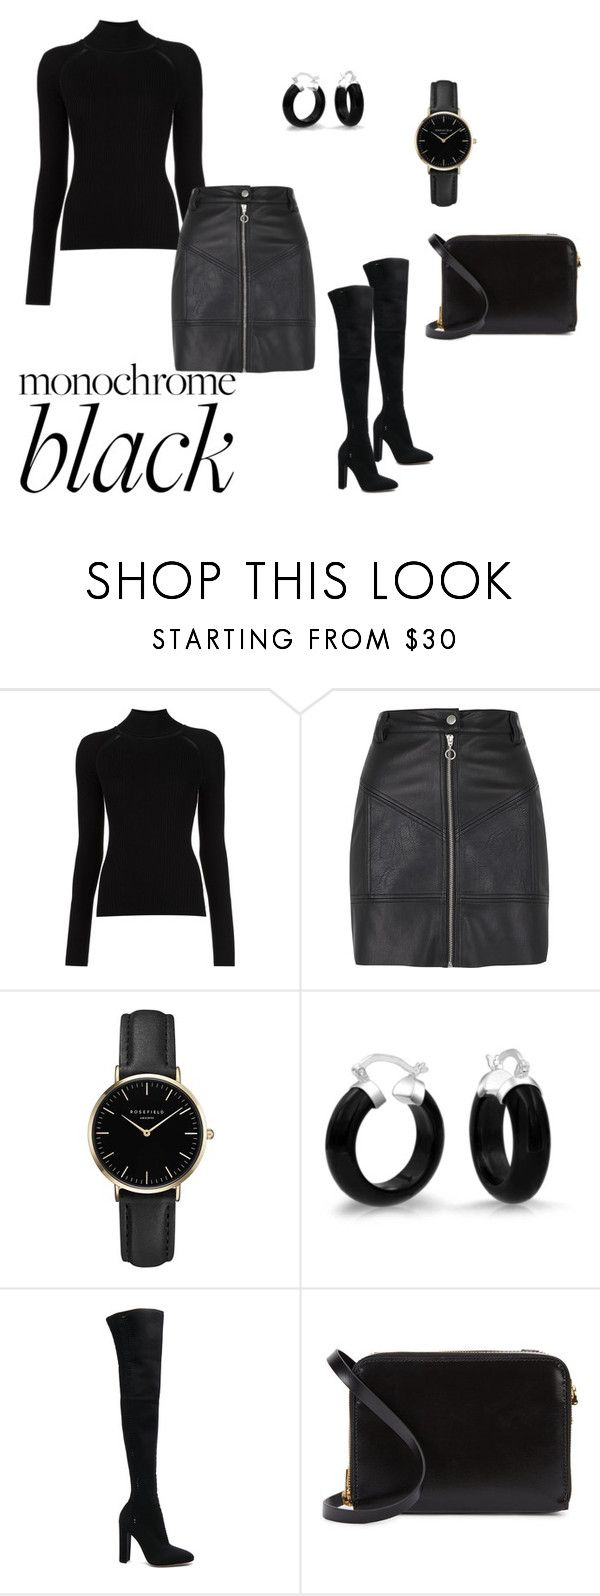 """Monochrome Black"" by lyra010 ❤ liked on Polyvore featuring Misha Nonoo, River Island, ROSEFIELD, Bling Jewelry, Gianvito Rossi and Sophie Hulme"